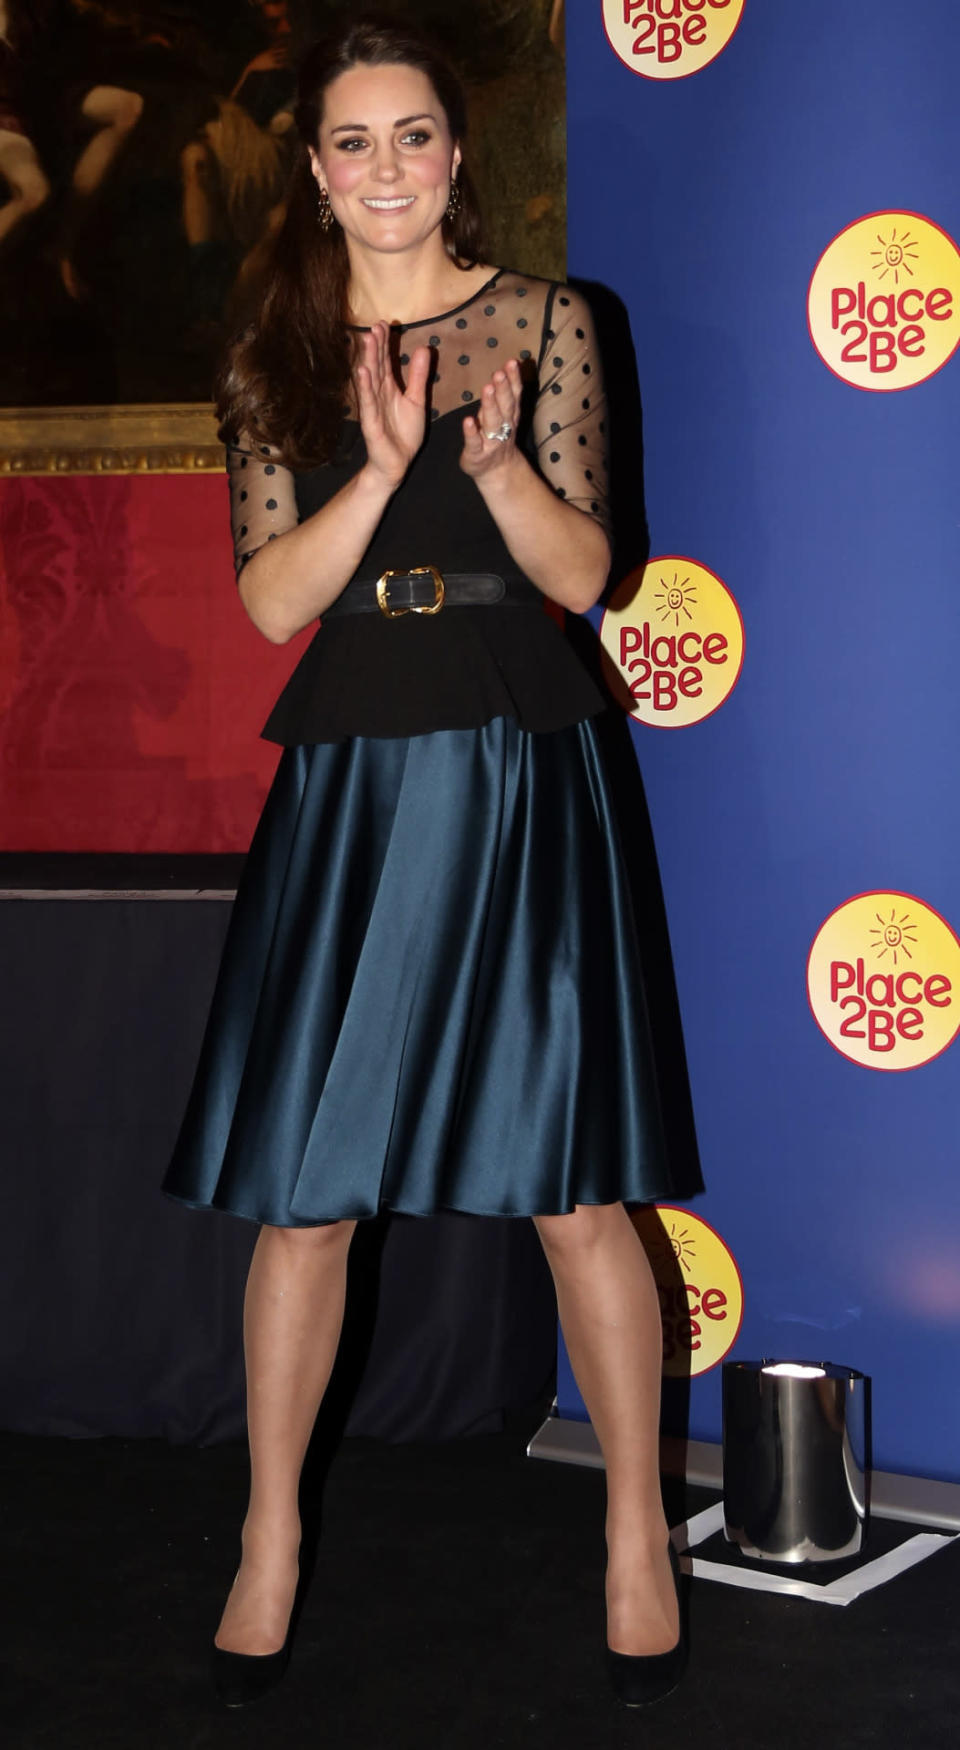 <p>Kate mixed designer and the high street for an awards ceremony at Kensington Palace. Wearing a polka dot top from Hobbs with a petrol blue Jenny Packham skirt, the Duchess accessorised with an Alexander McQueen belt and Jimmy Choo pumps. </p><p><i>[Photo: PA]</i></p>